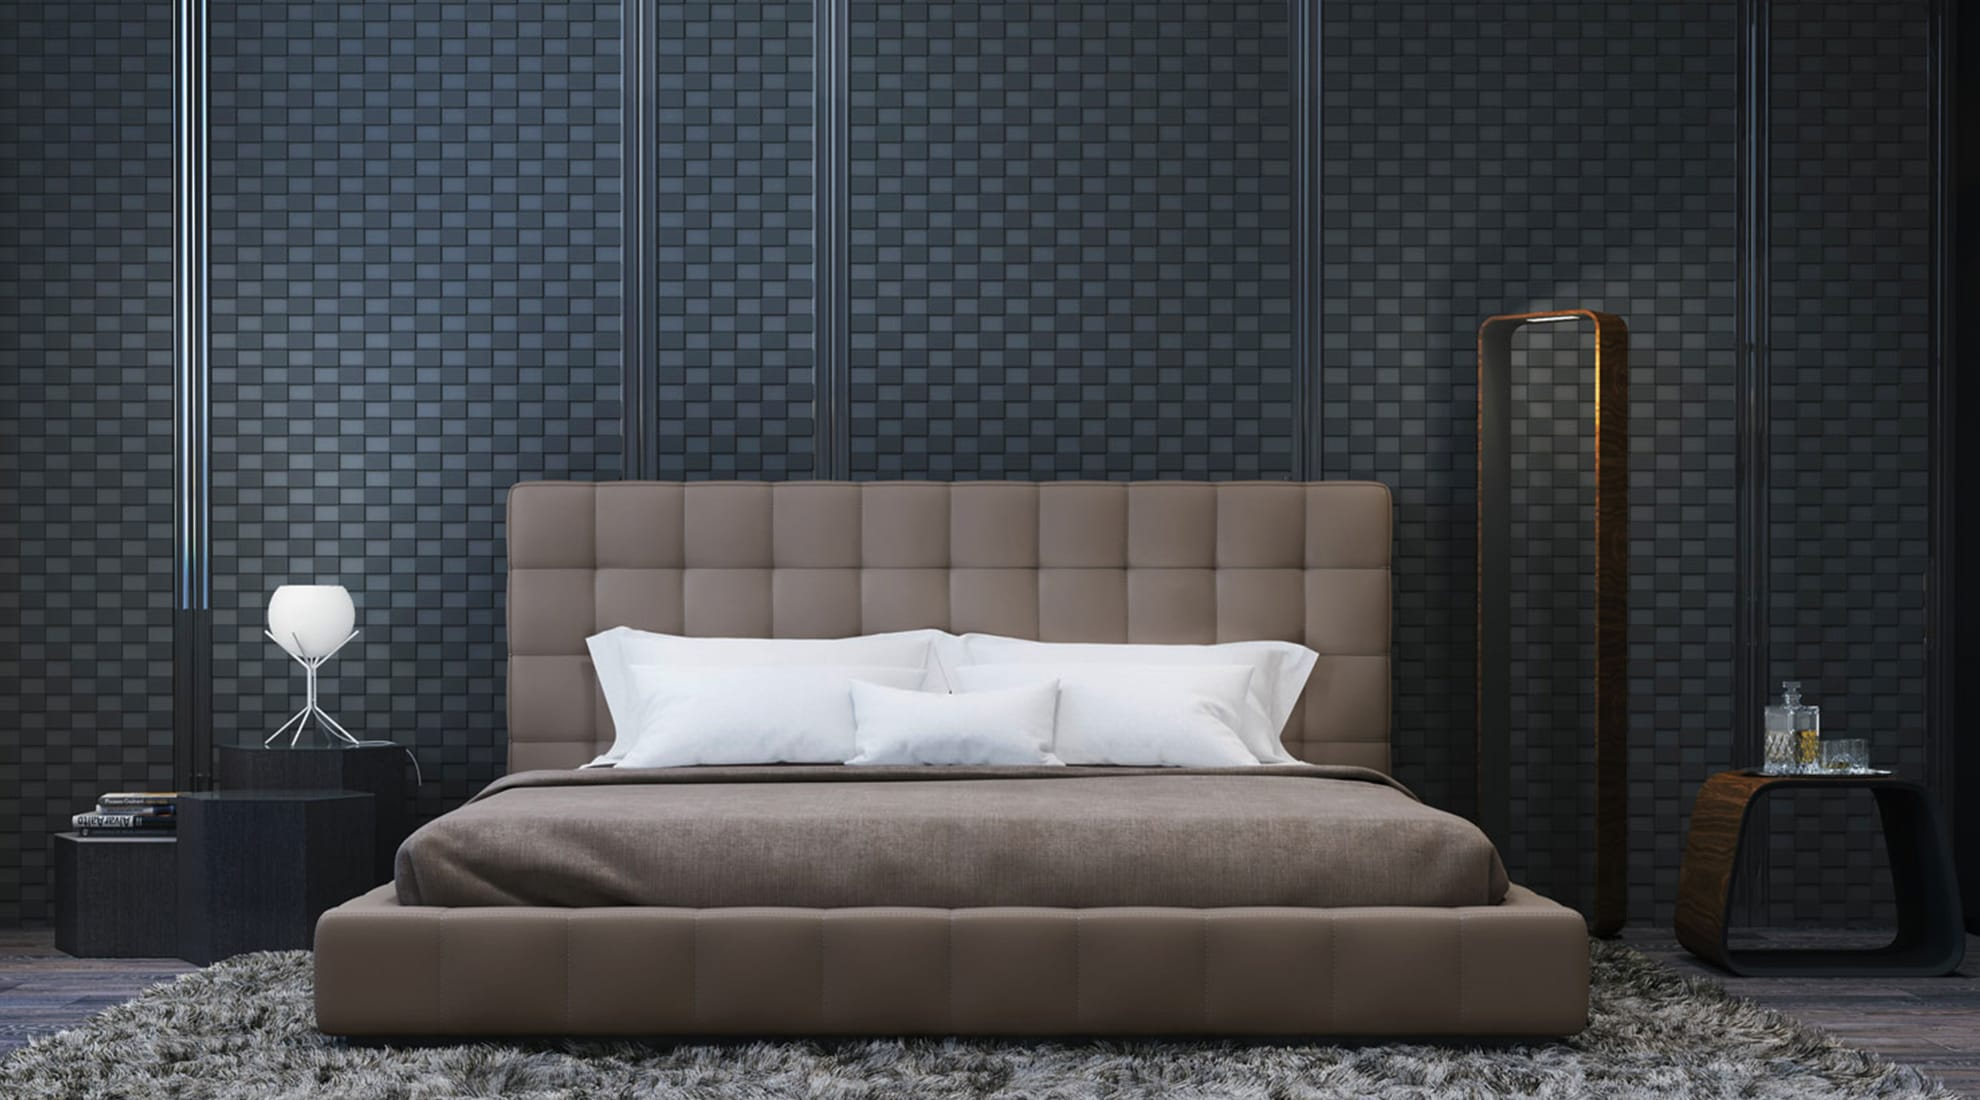 Thompson Bed by Modloft and Contour LED Floor Lamp by Pablo Designs